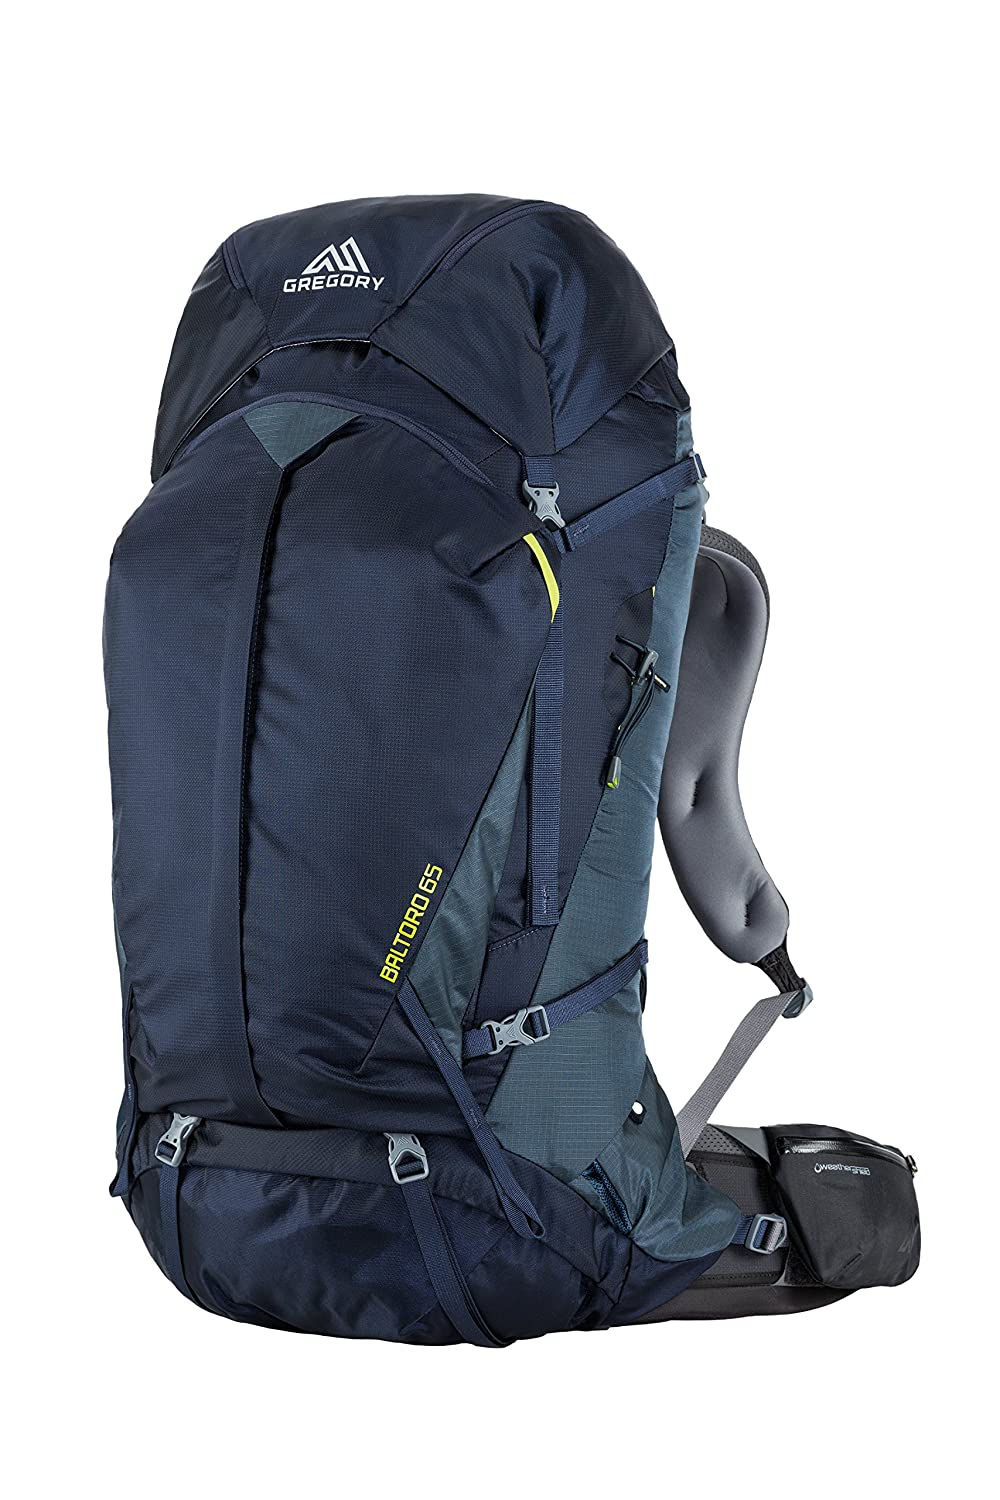 Gregory Mountain Products Baltoro 65